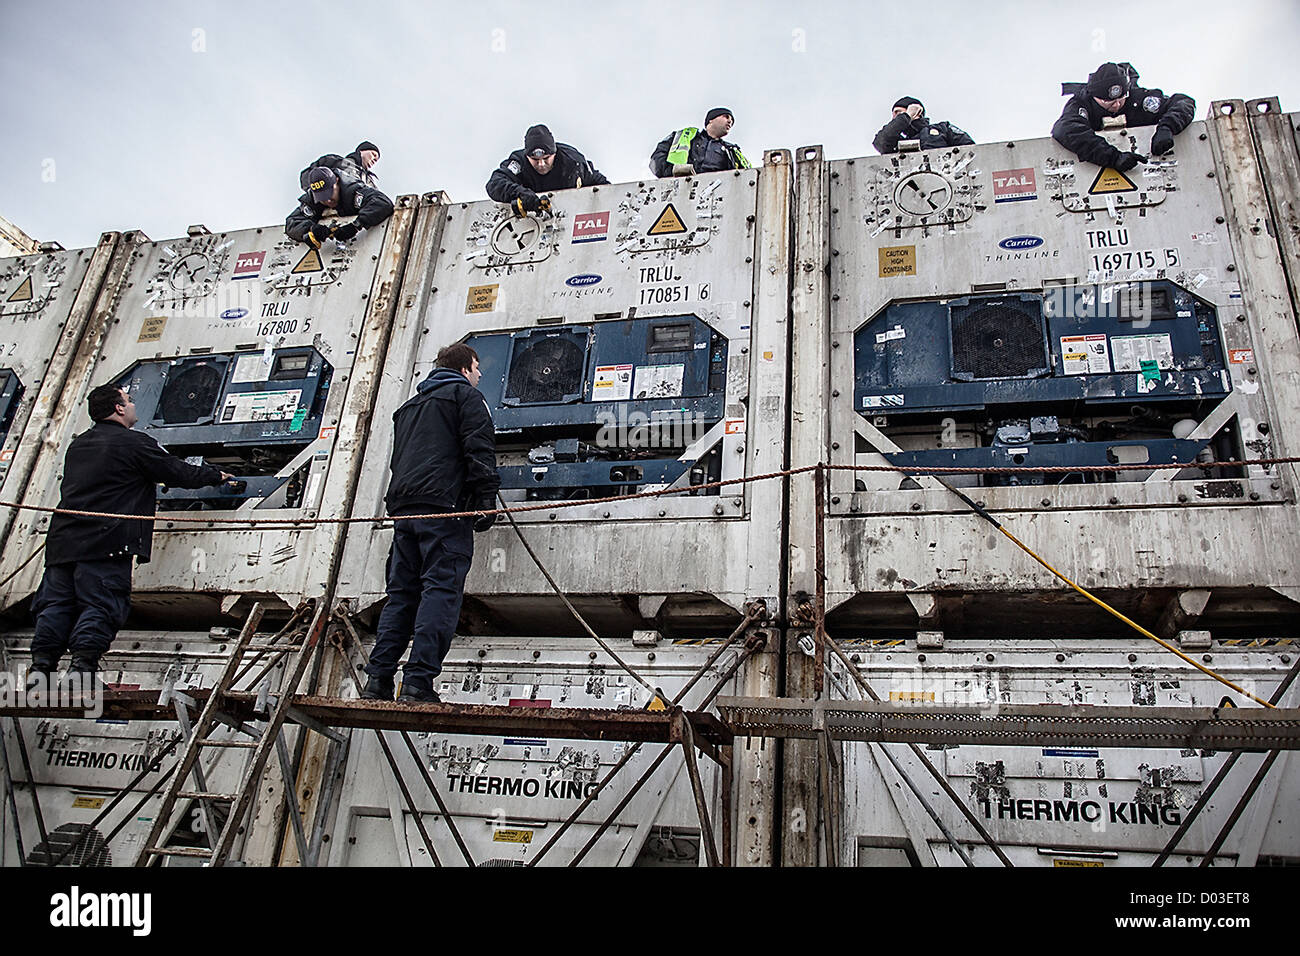 US Customs & Border Protection police inspect cargo containers November 11, 2012 at the Port of New York in - Stock Image